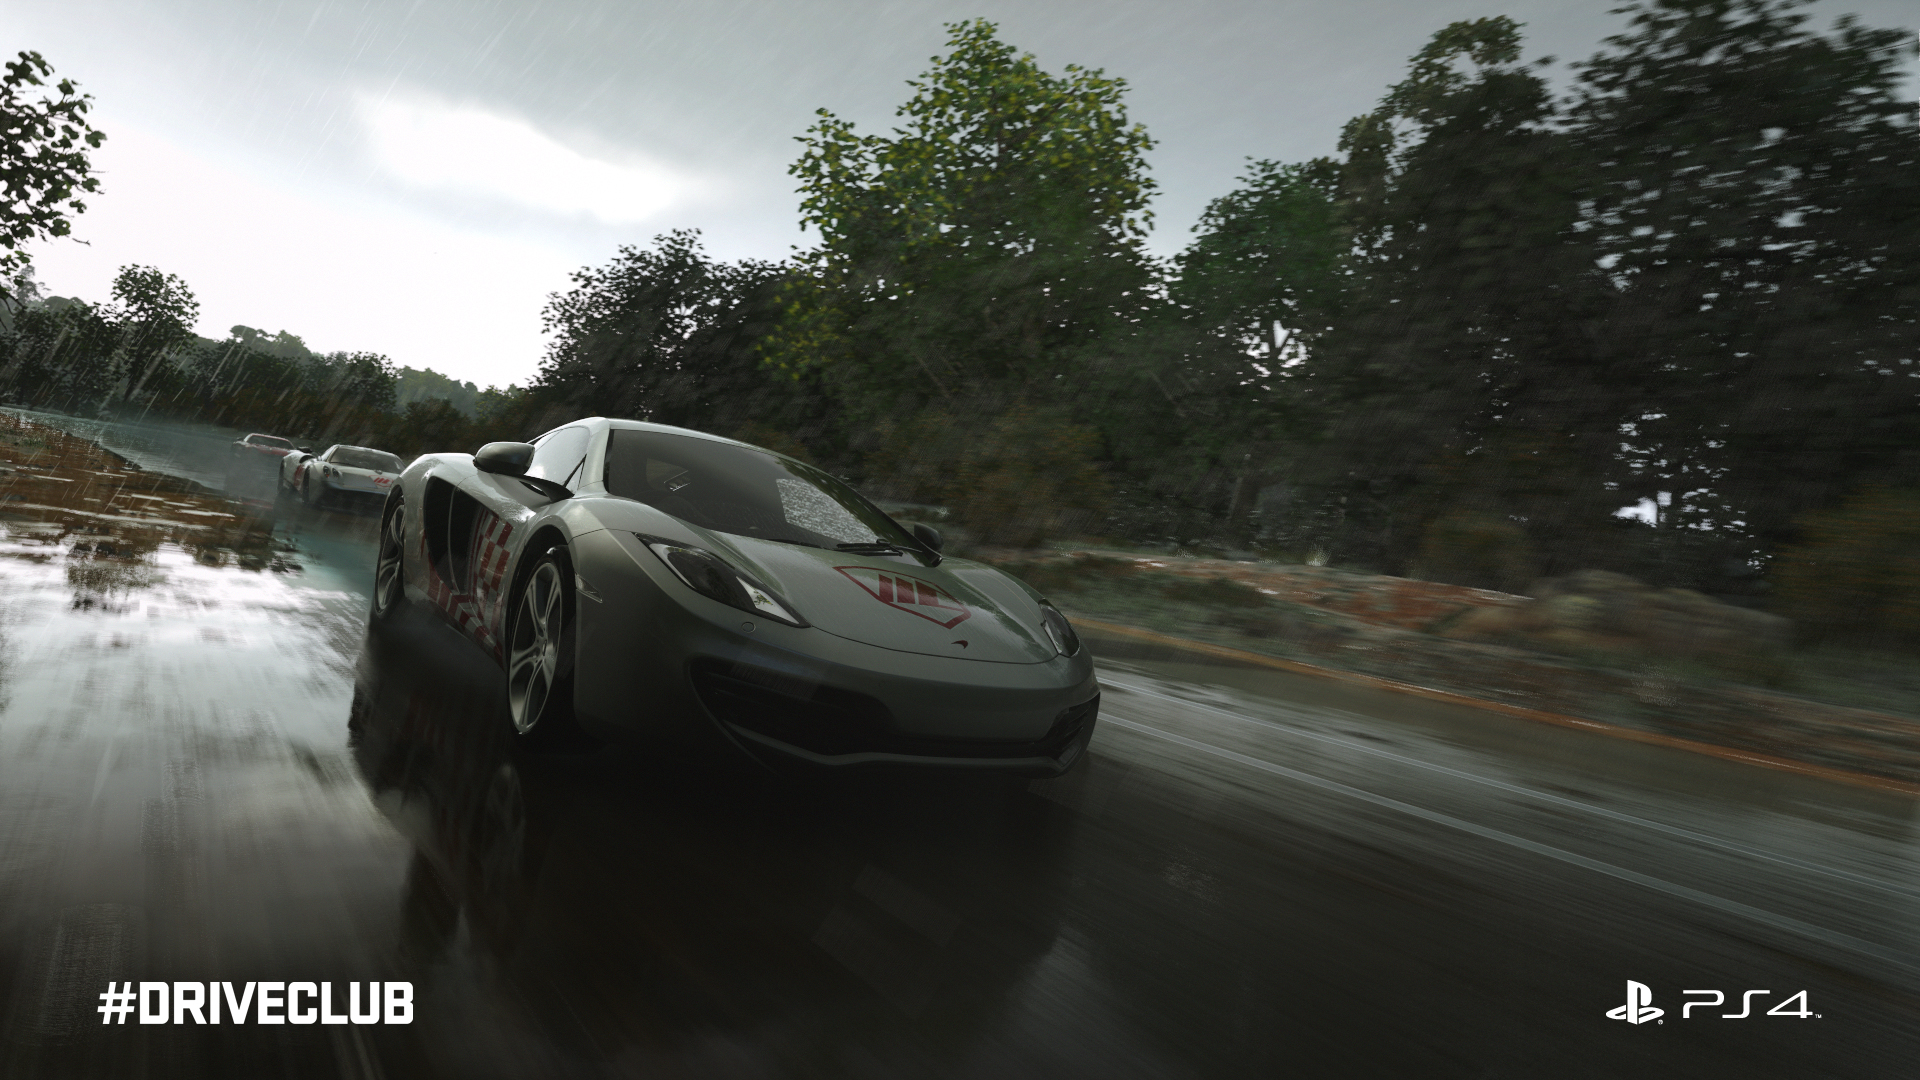 DriveClub VR Will Launch With The PlayStation